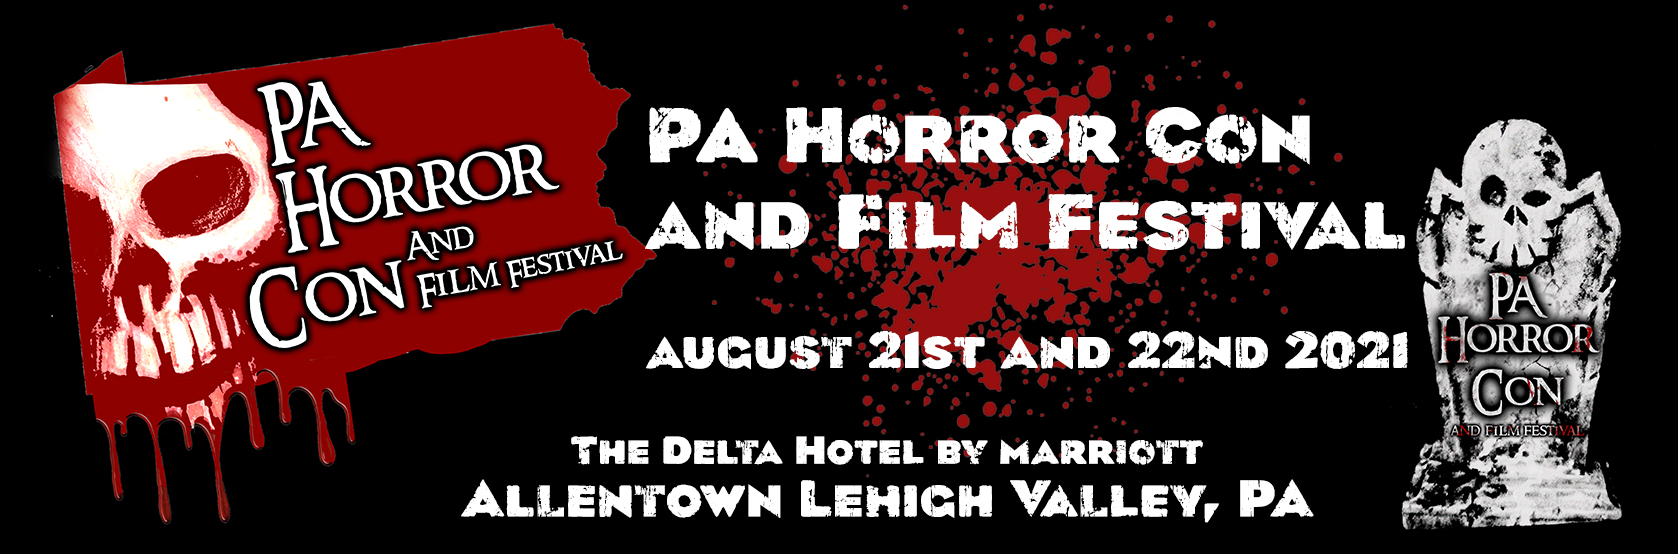 PA Horror Con and Film Festival